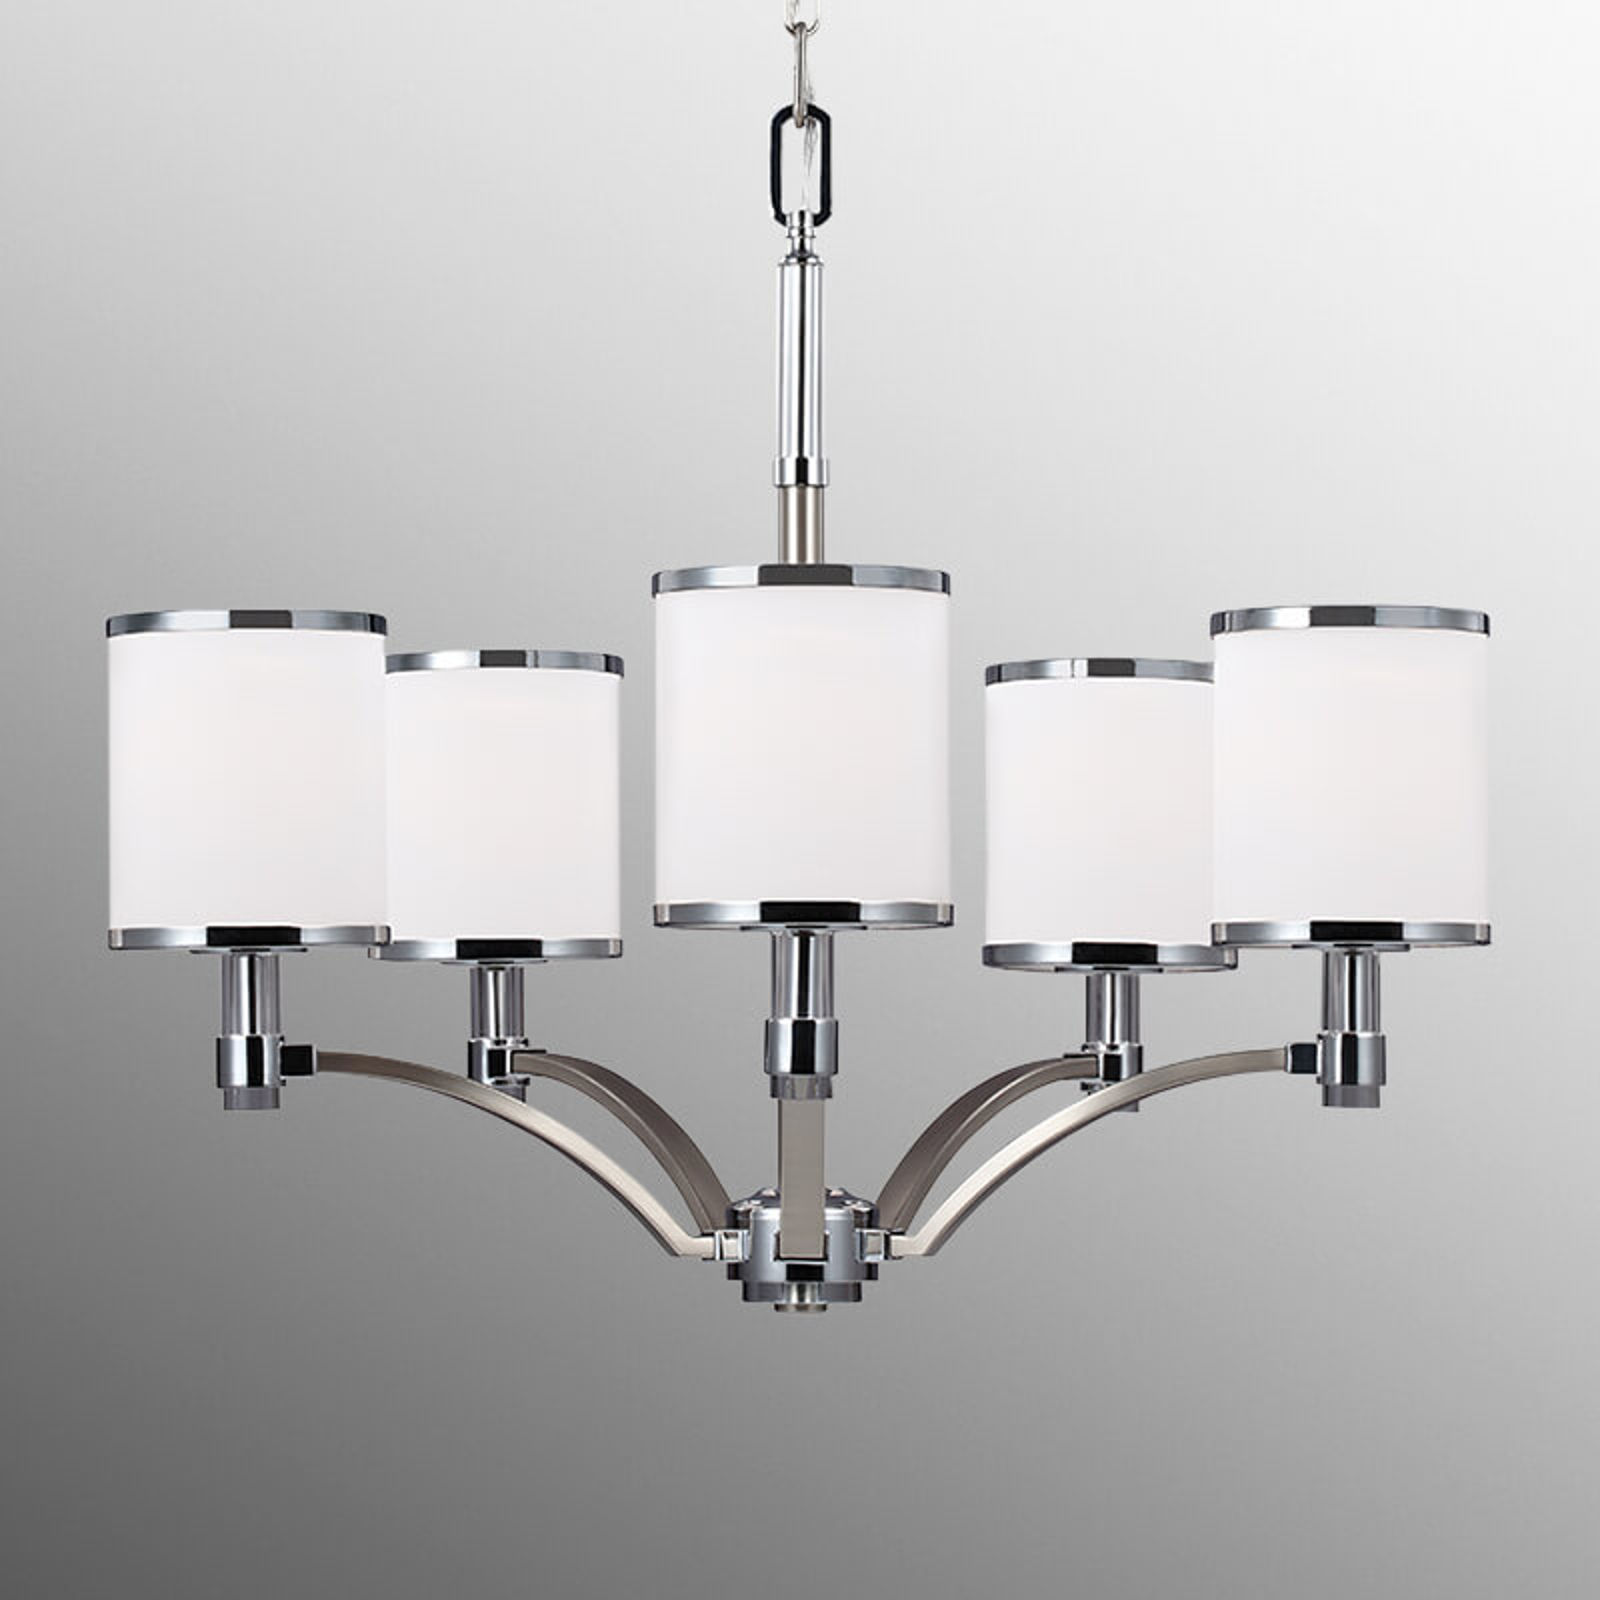 Mauro chandelier with Scavo glass, 5 bulb